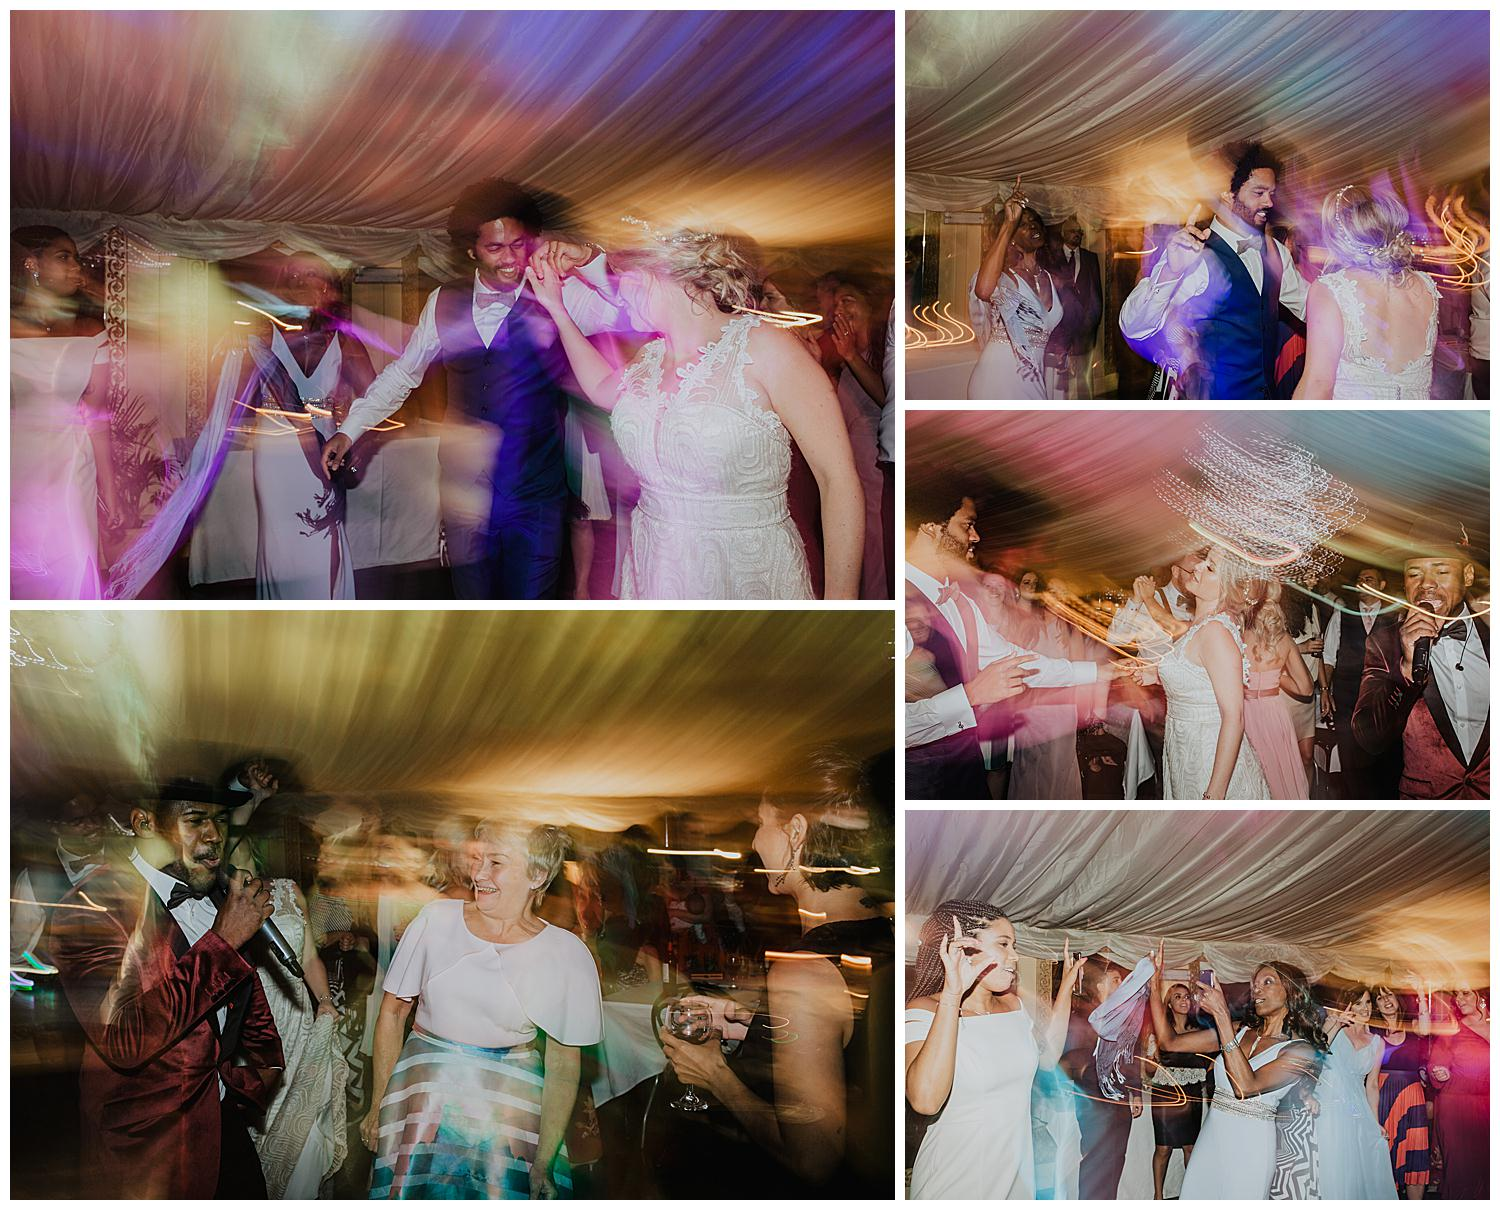 j&r_ballybeg_house_wedding_photographer_livia_figueiredo_708.jpg